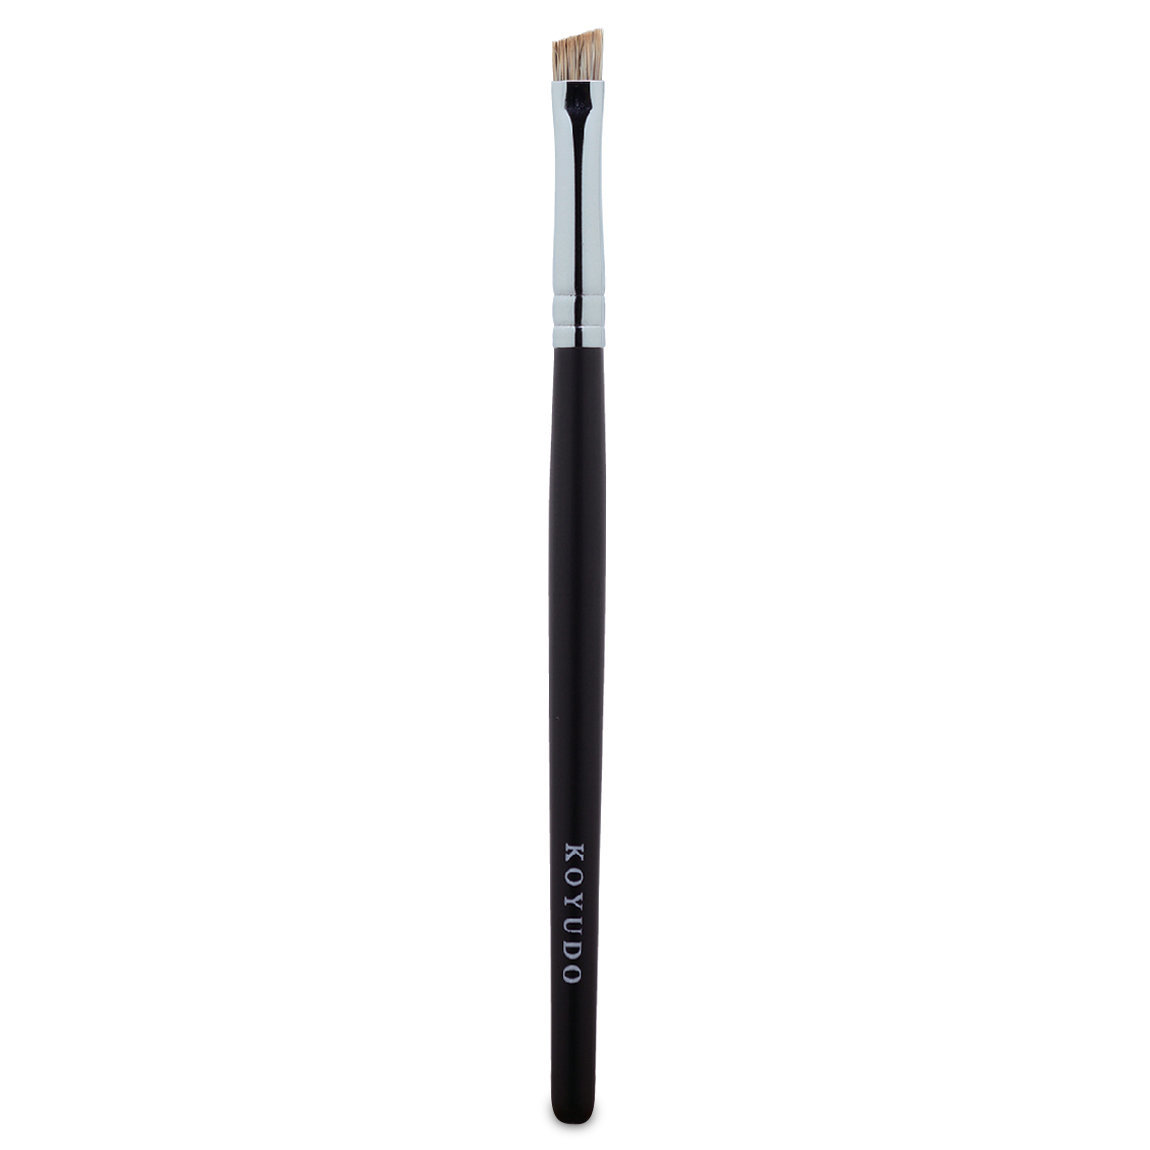 KOYUDO Casual Series C-38 Eyebrow Brush product swatch.